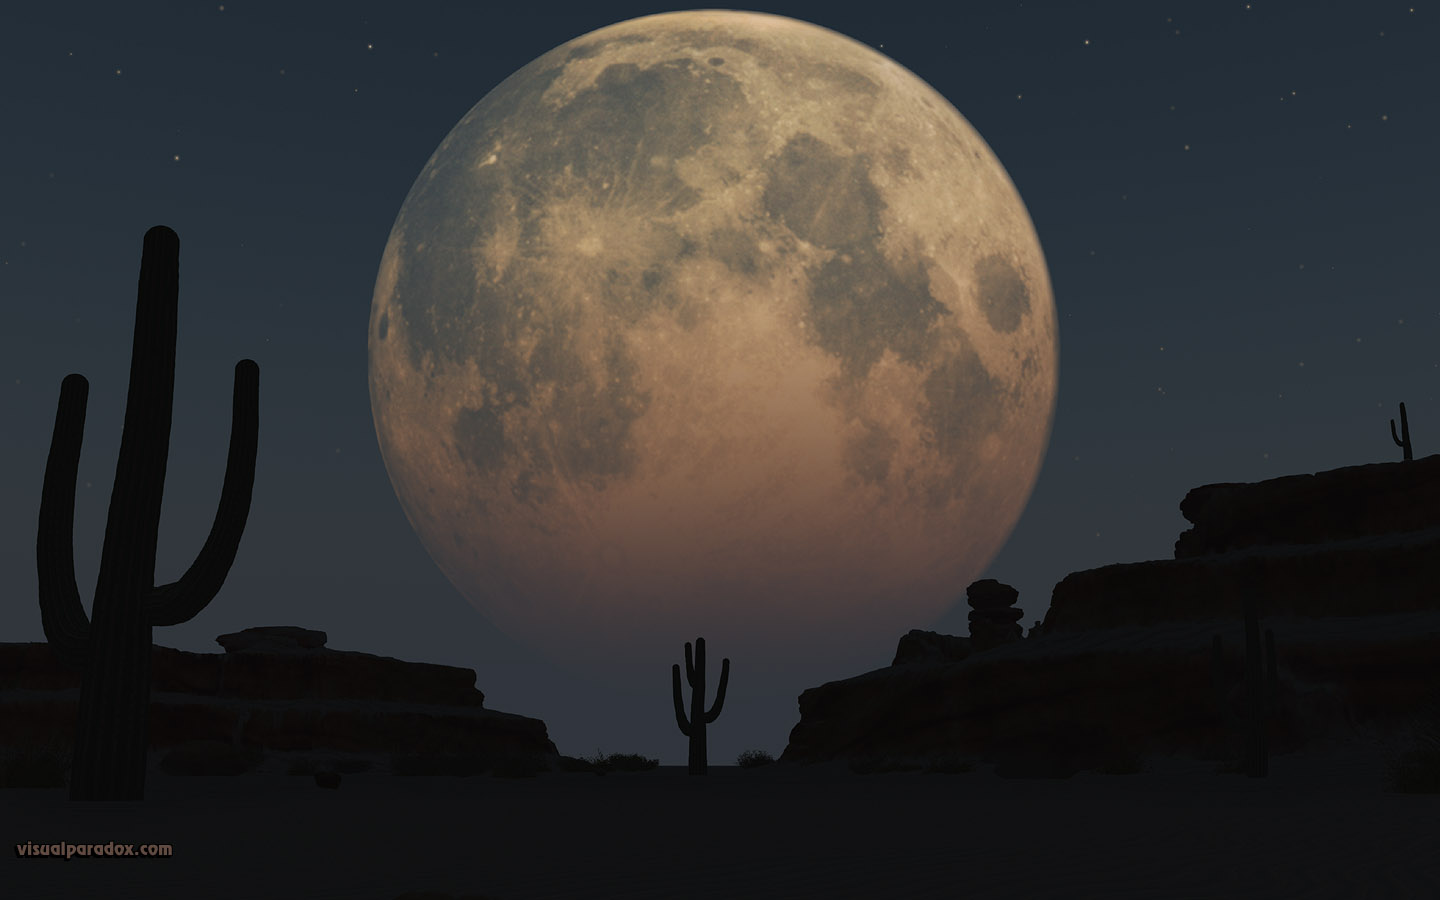 lunar, moon, planet, desert, sand, cactus, night, full moon, 3d, wallpaper, widescreen